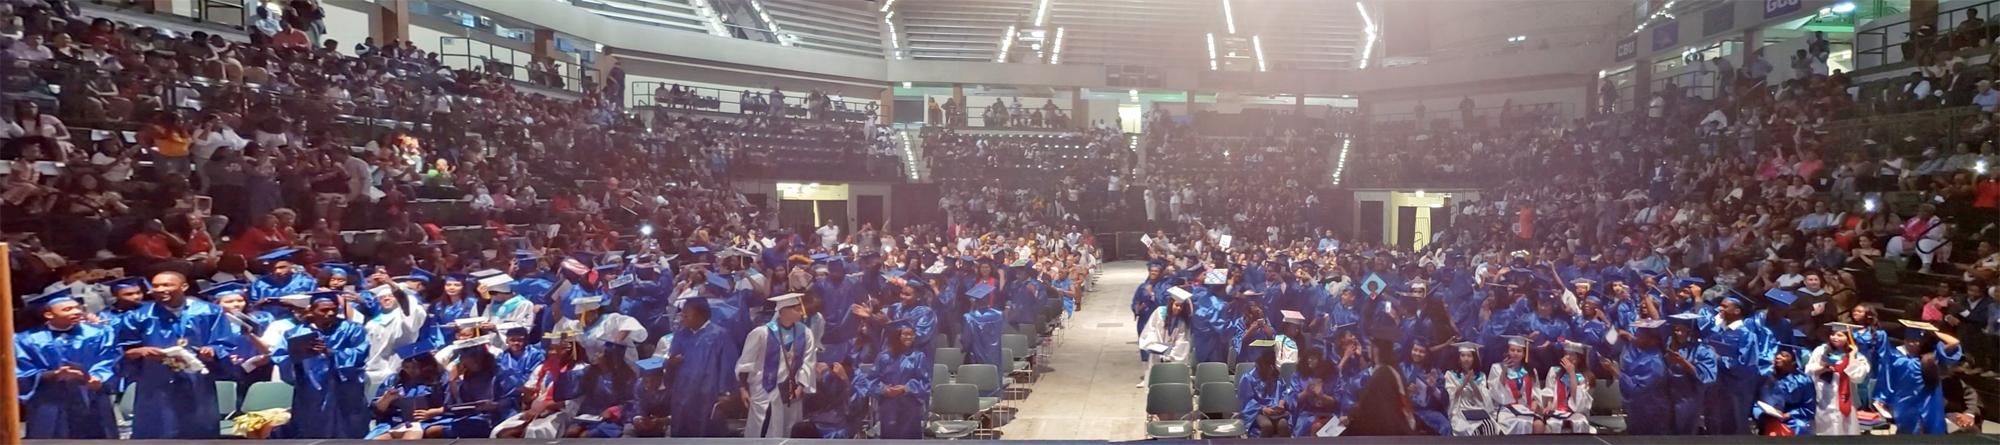 Photo of seniors in cap and gown at graduation.